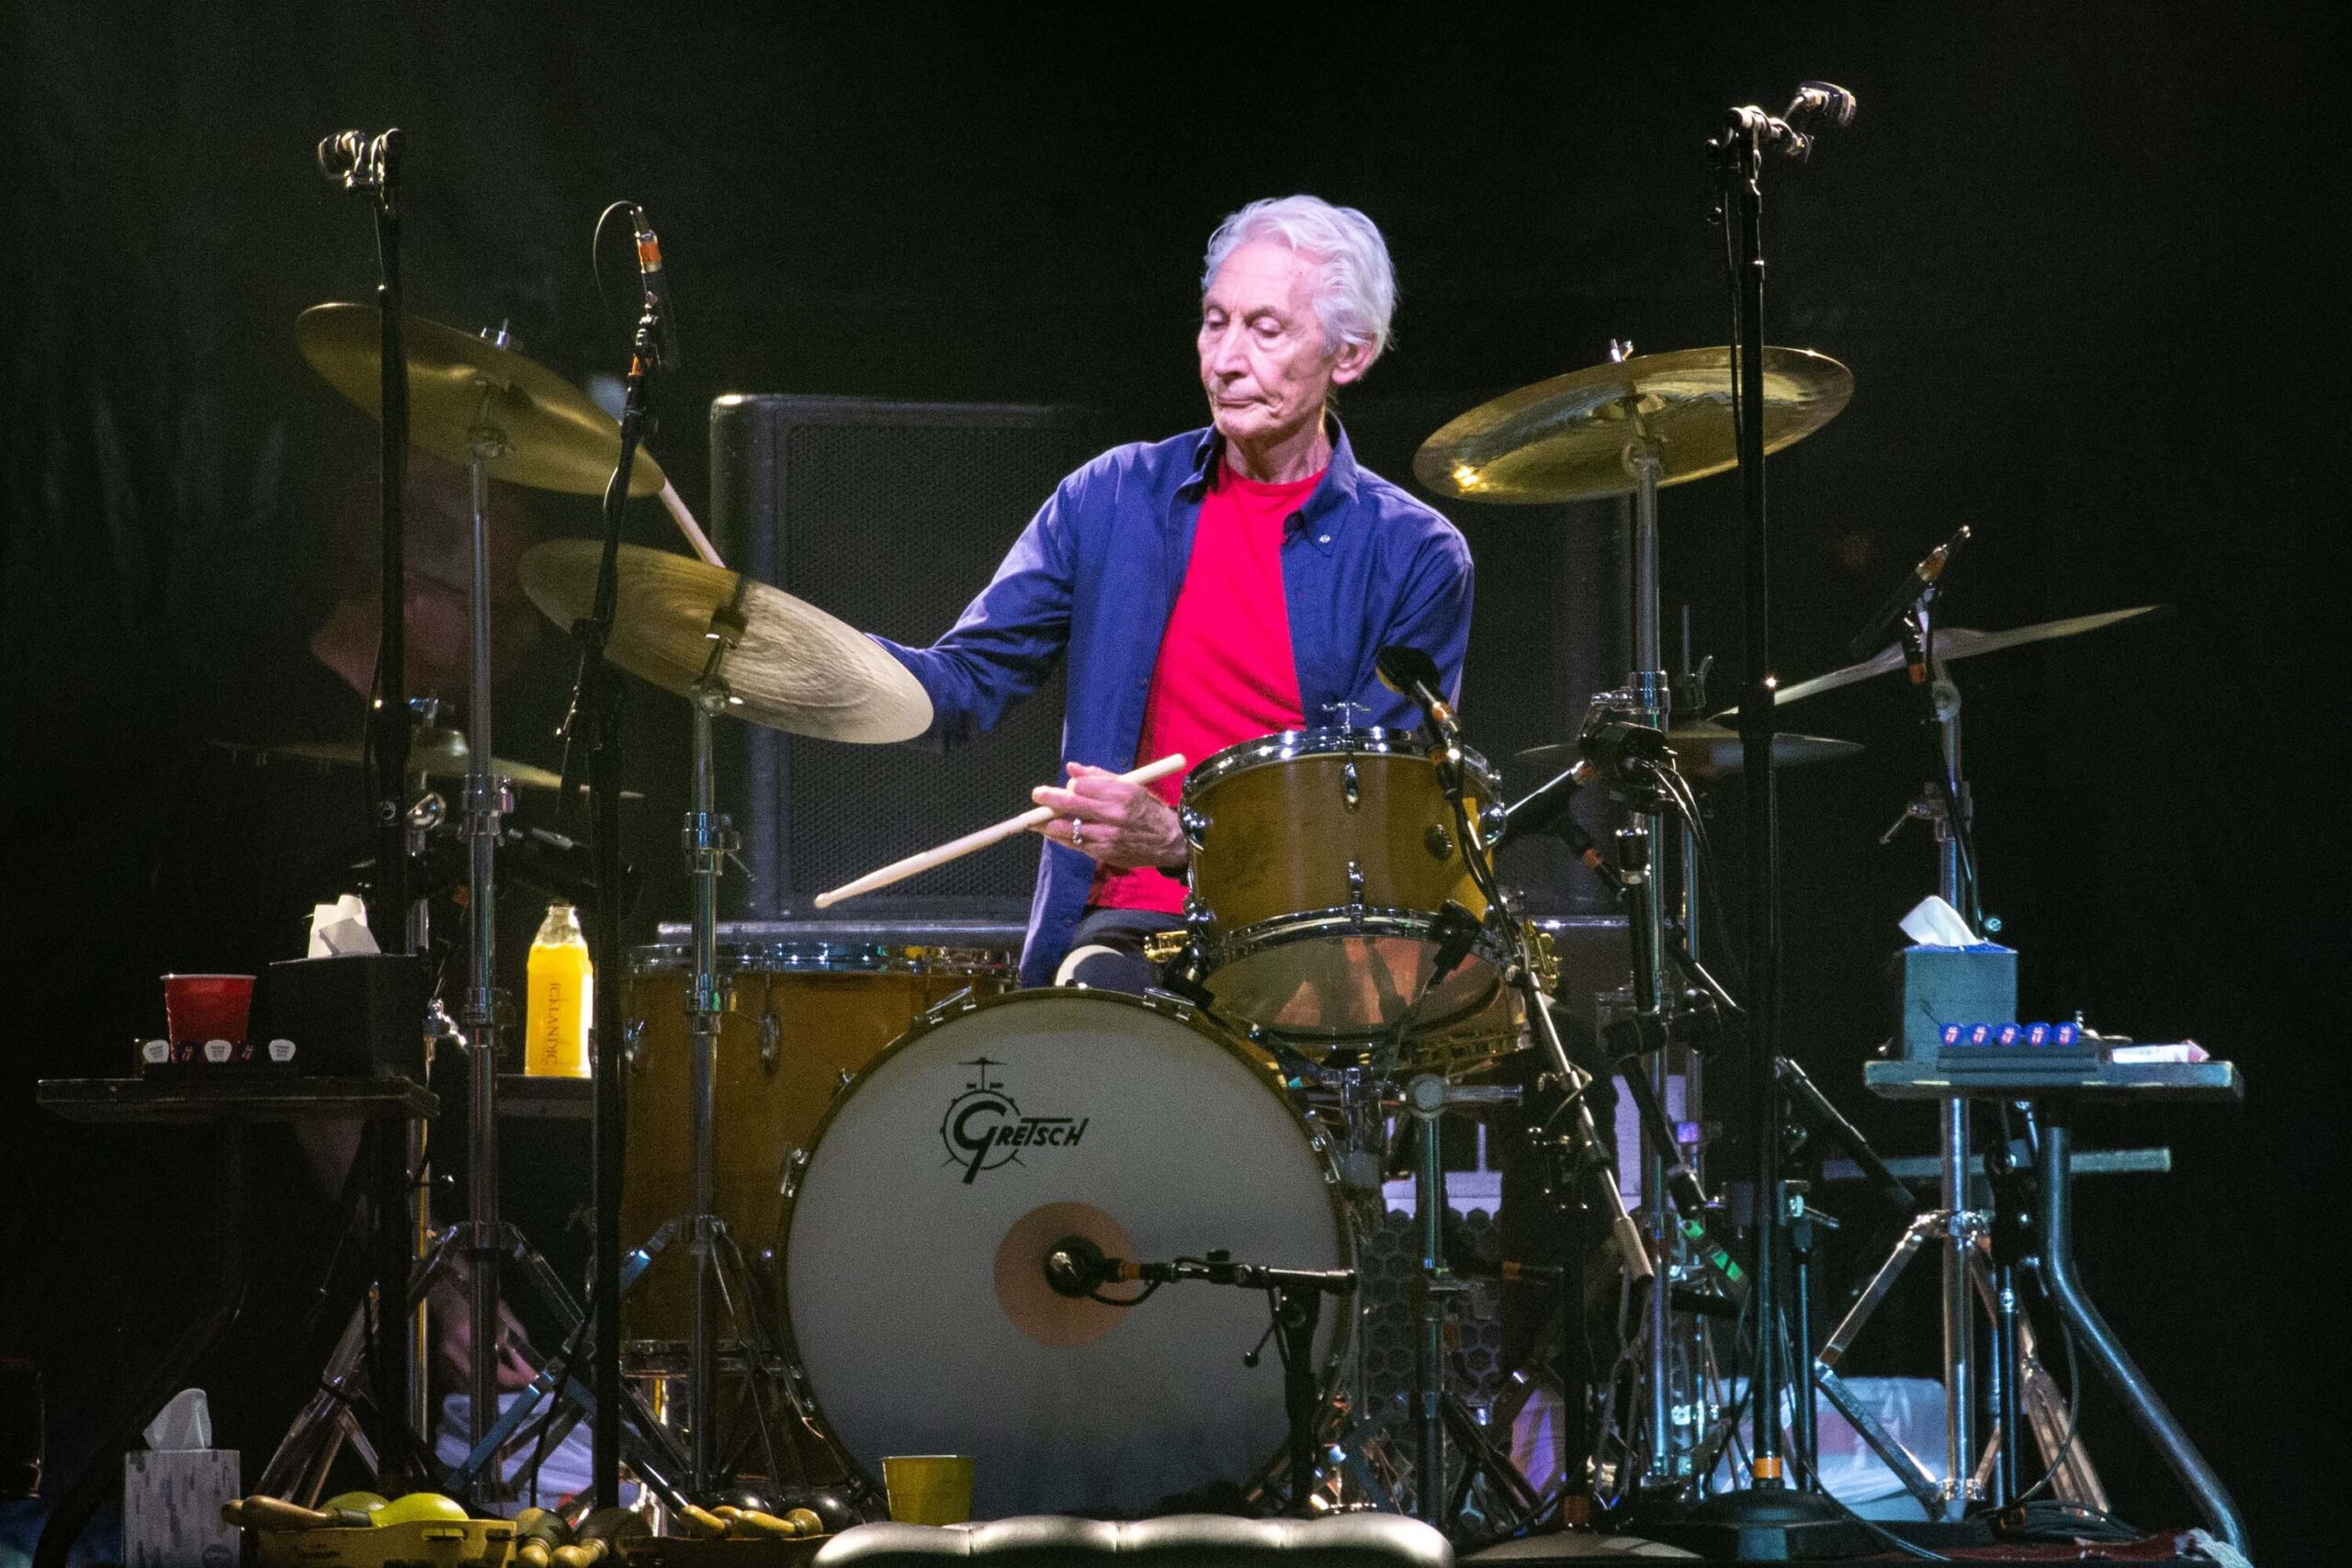 <i>Suzanne Cordeiro/AFP/Getty Images</i><br/>The Rolling Stones drummer Charlie Watts